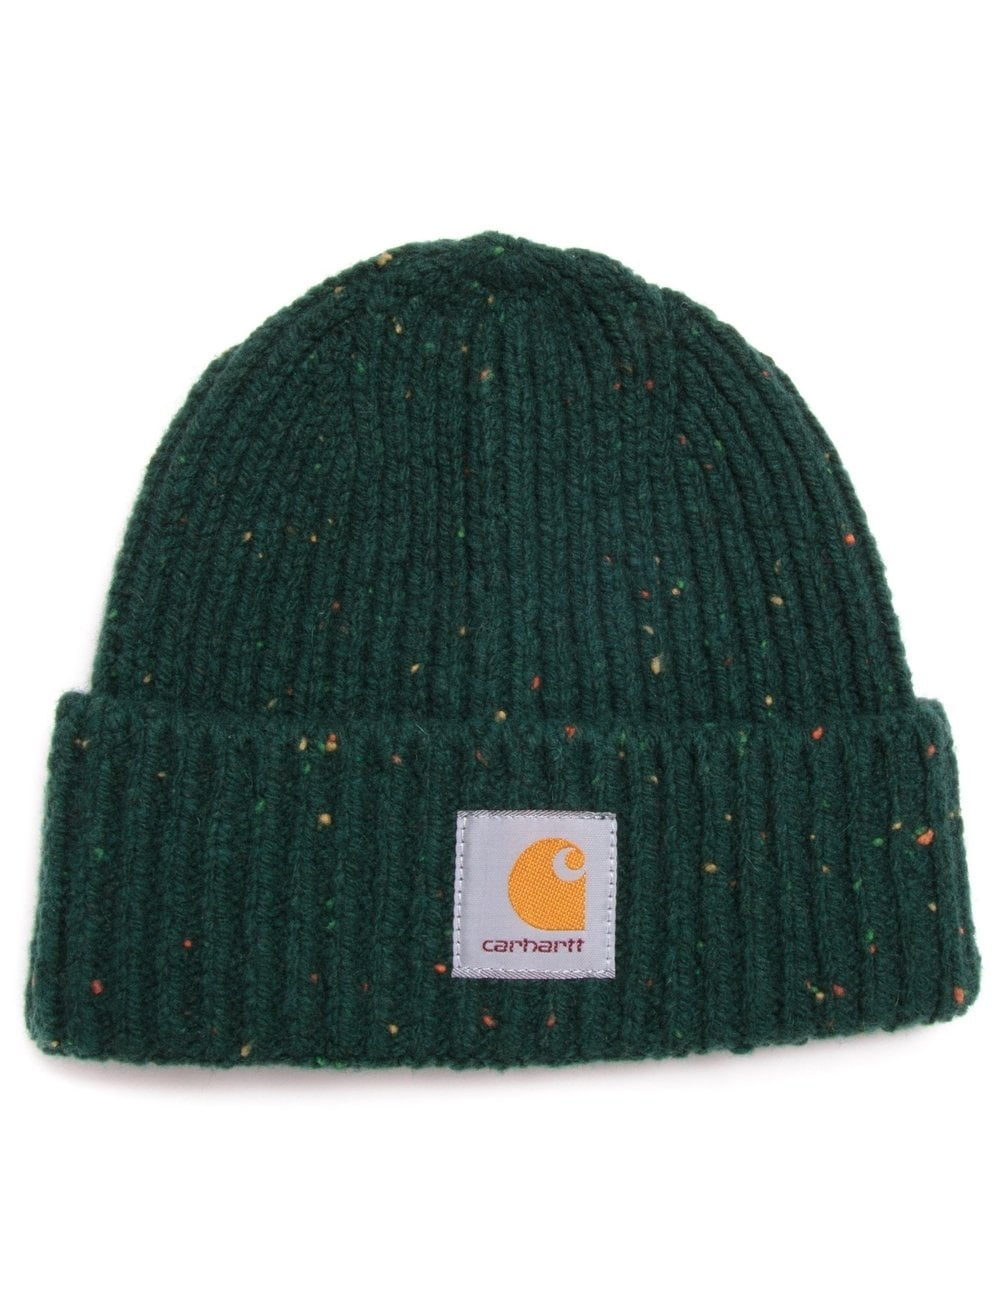 Carhartt WIP Anglistic Beanie - Bottle Green - Accessories from Fat ... 686ec0499d0